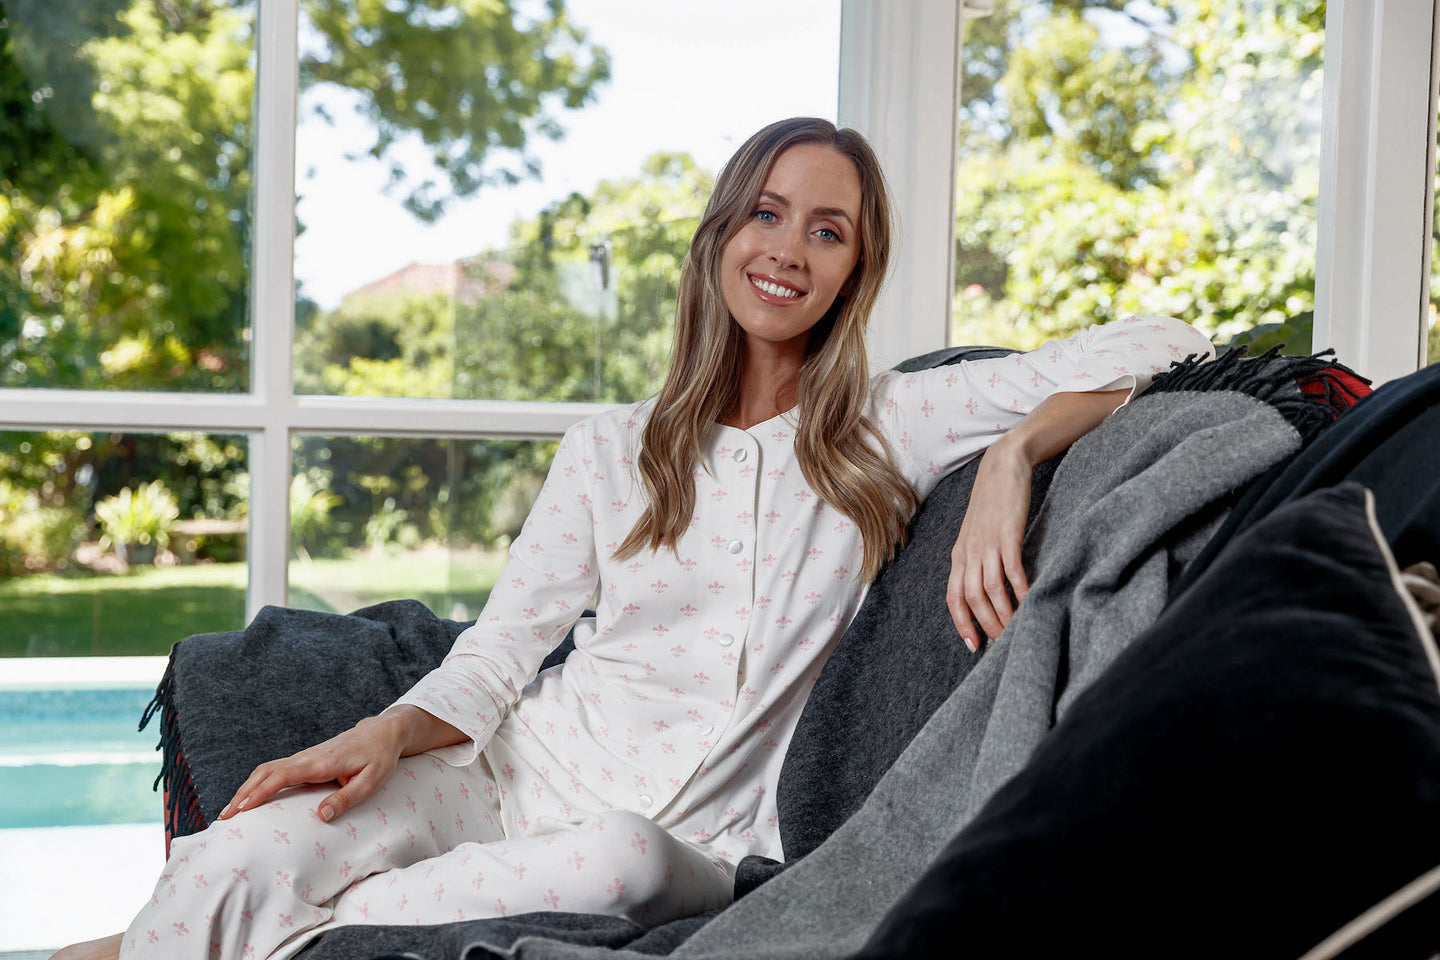 Feel beautiful in the Fleur-de-Lis cotton knit pyjama set with a delicate print on a soft cream background.  The cotton knit long sleeve pyjamas have cream satin piping and covered satin buttons.  The pants are long with a soft elastic waist for comfort.